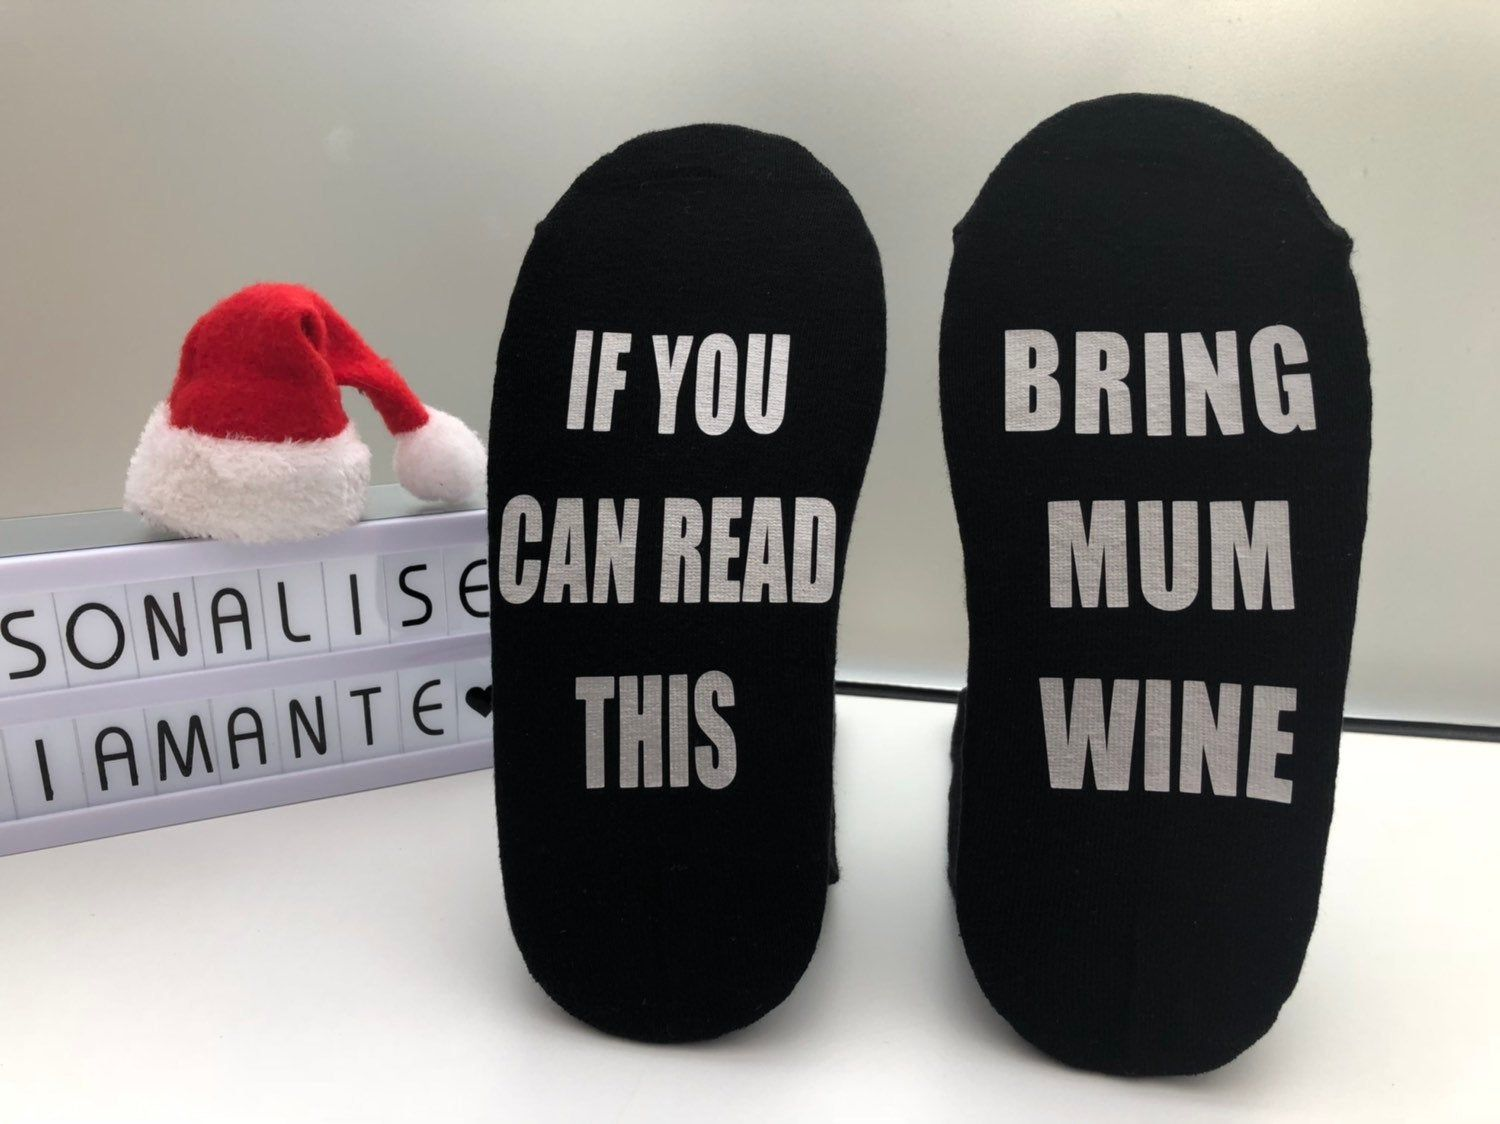 If You Can Read This Bring Mum Wine If You Can Read This Bring